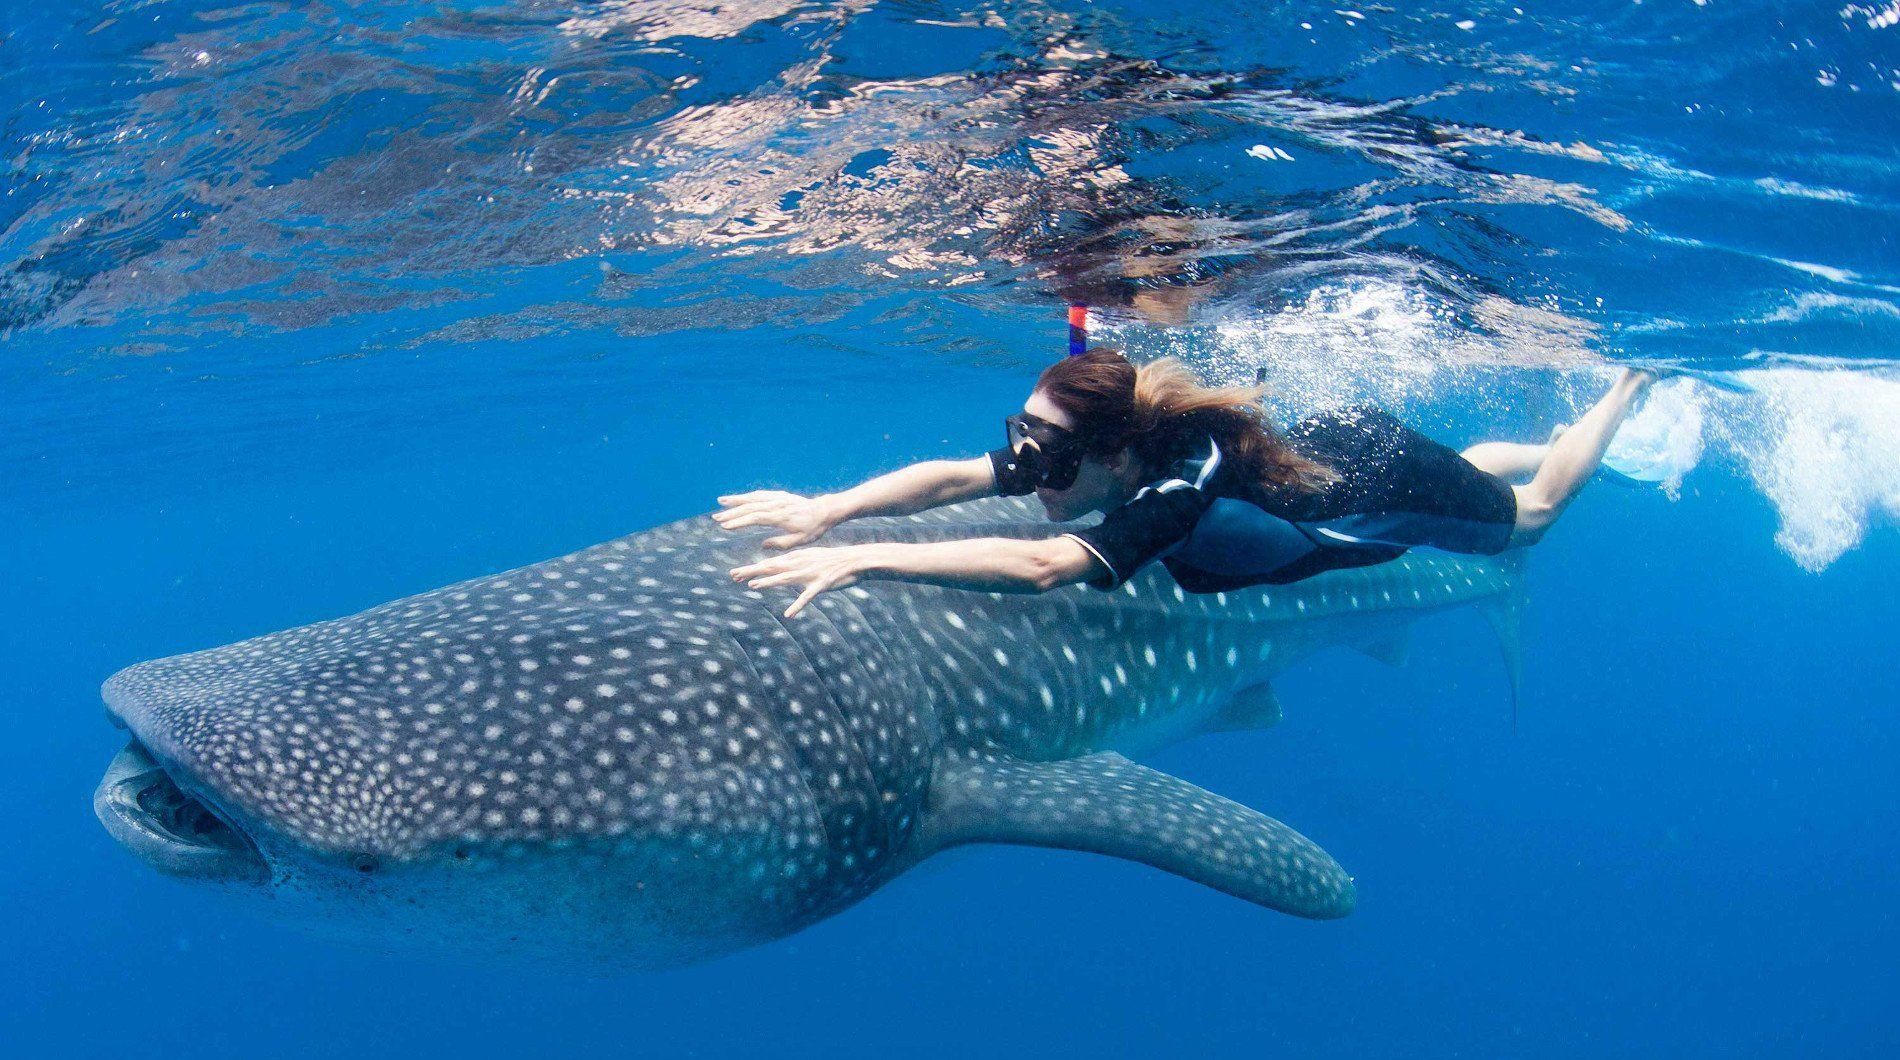 Whale shark underwater ocean sea wallpaper | 1900x1060 | 418119 ...